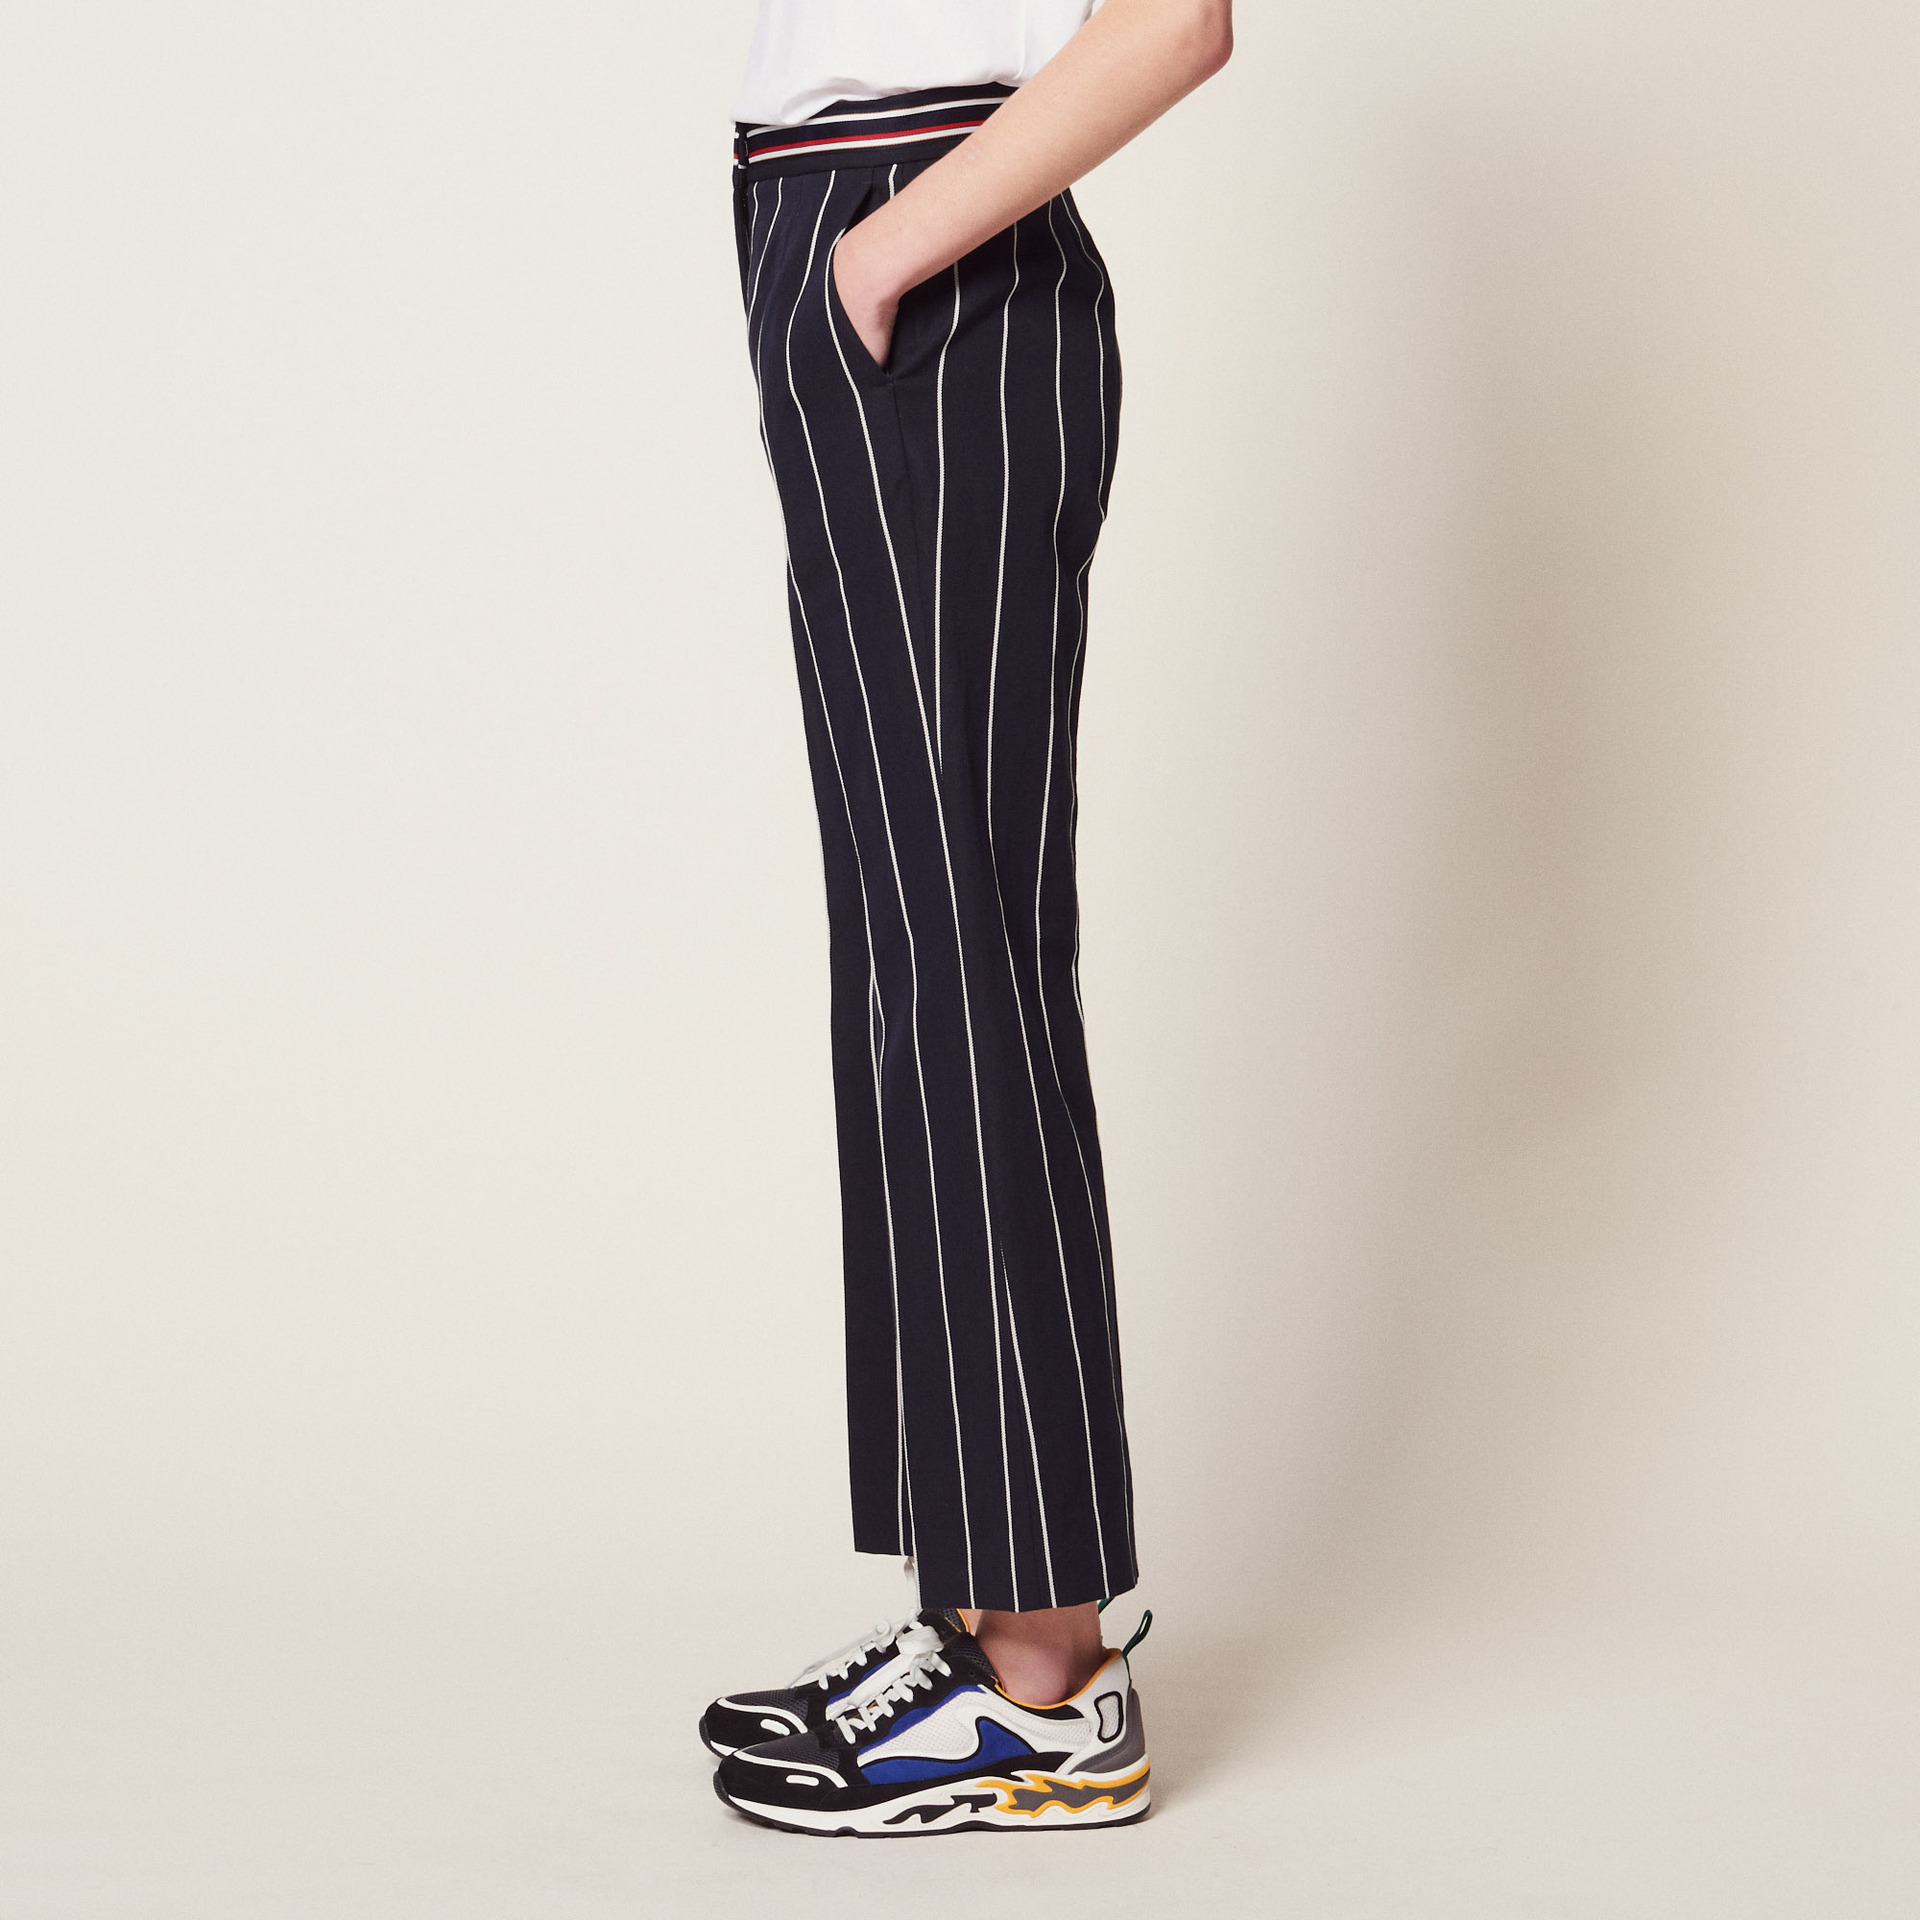 women pants 2019 spring and summer new striped casual pants straight ninth pants